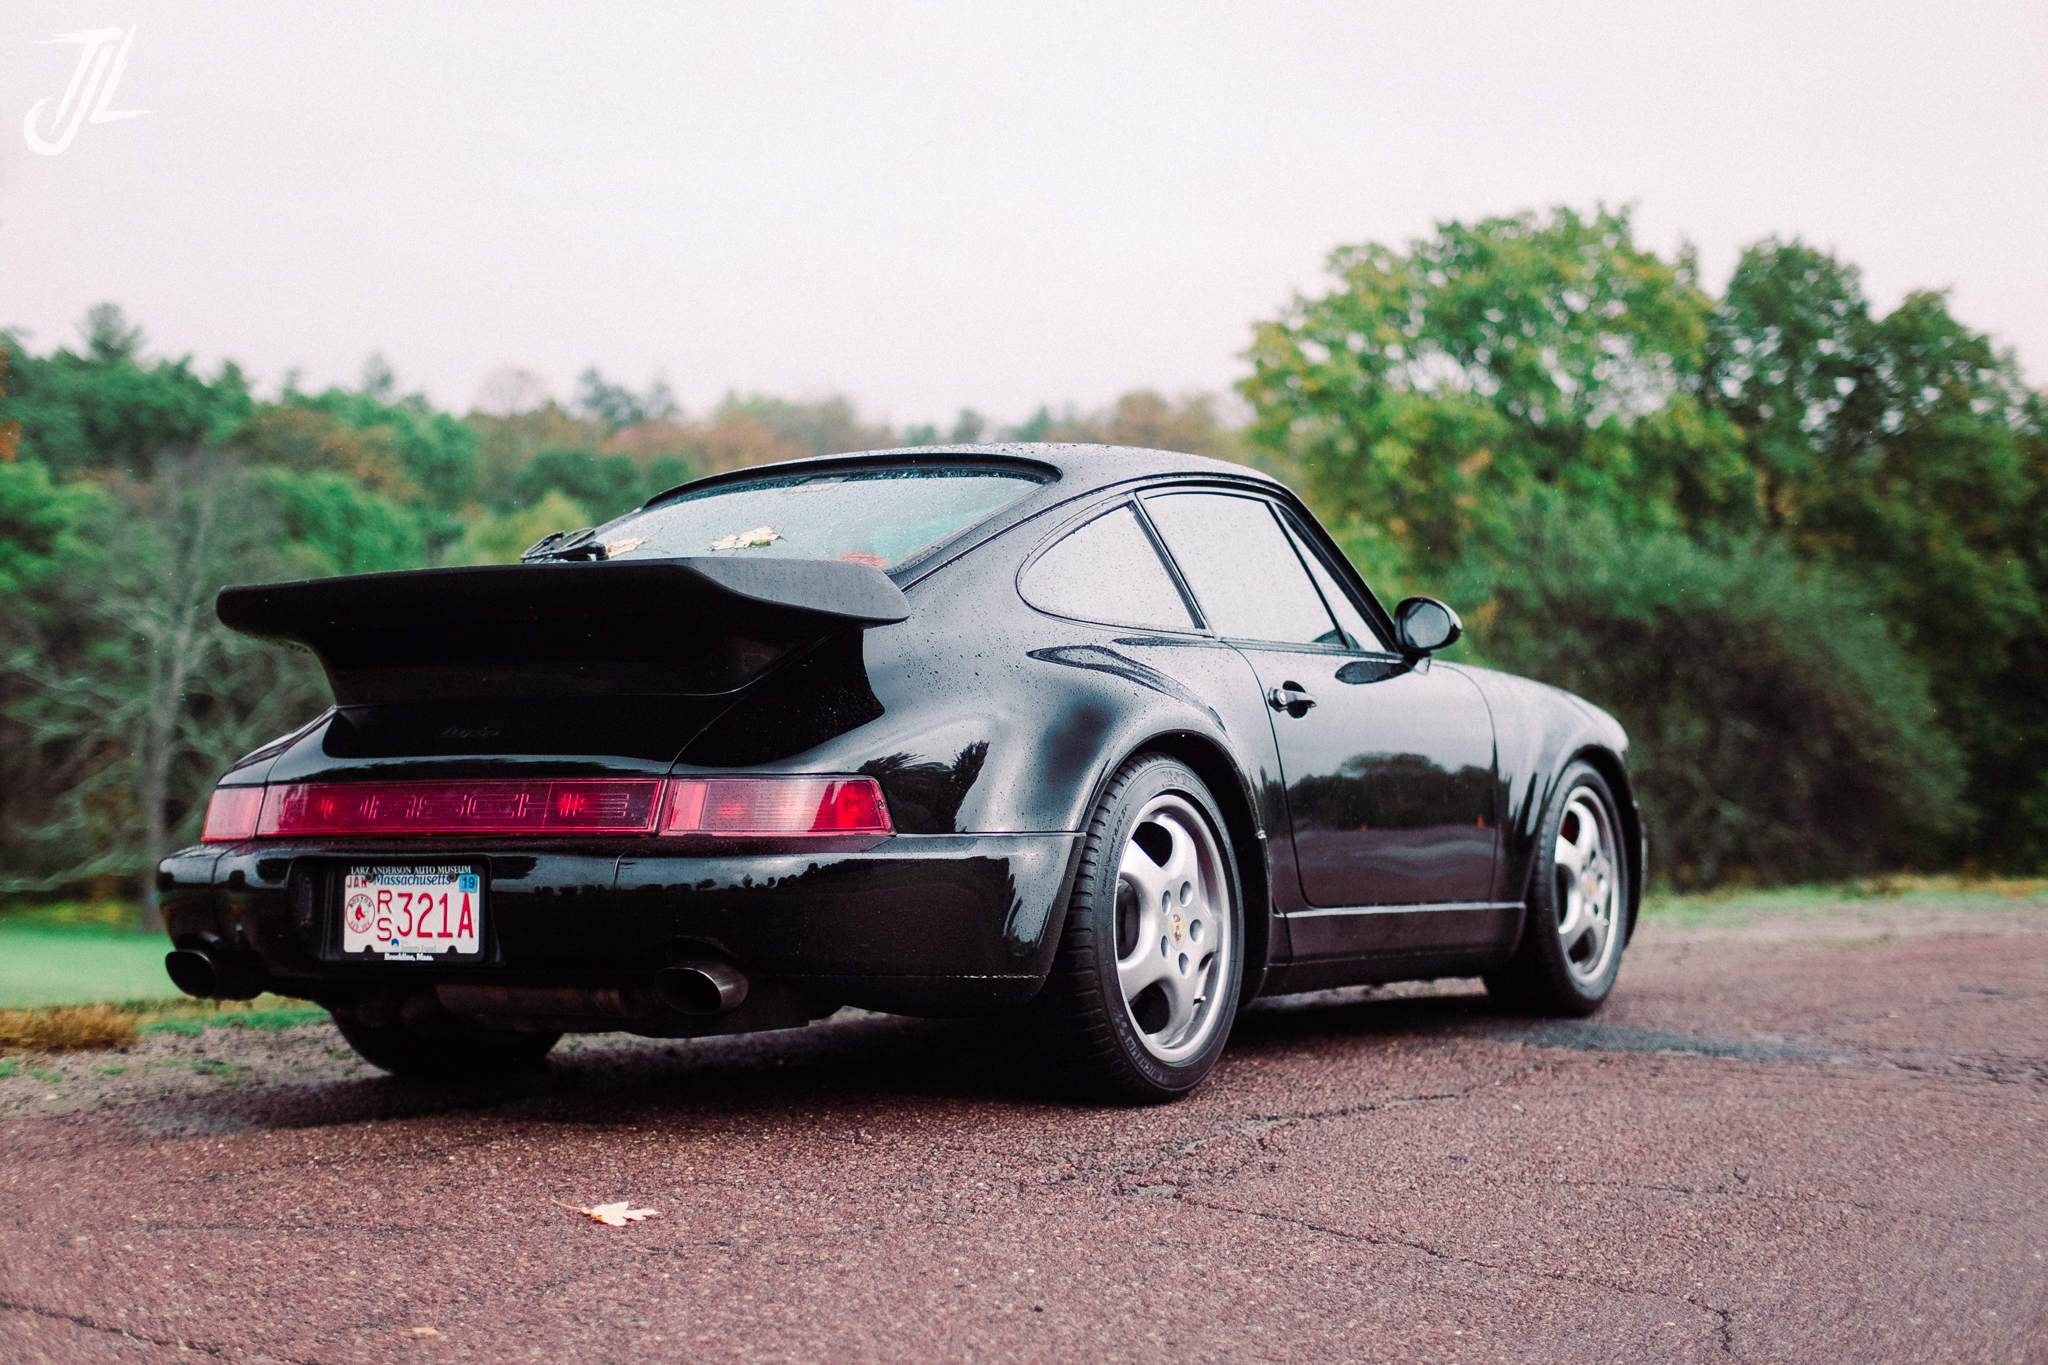 turbo964 compressed (9 of 17).jpg